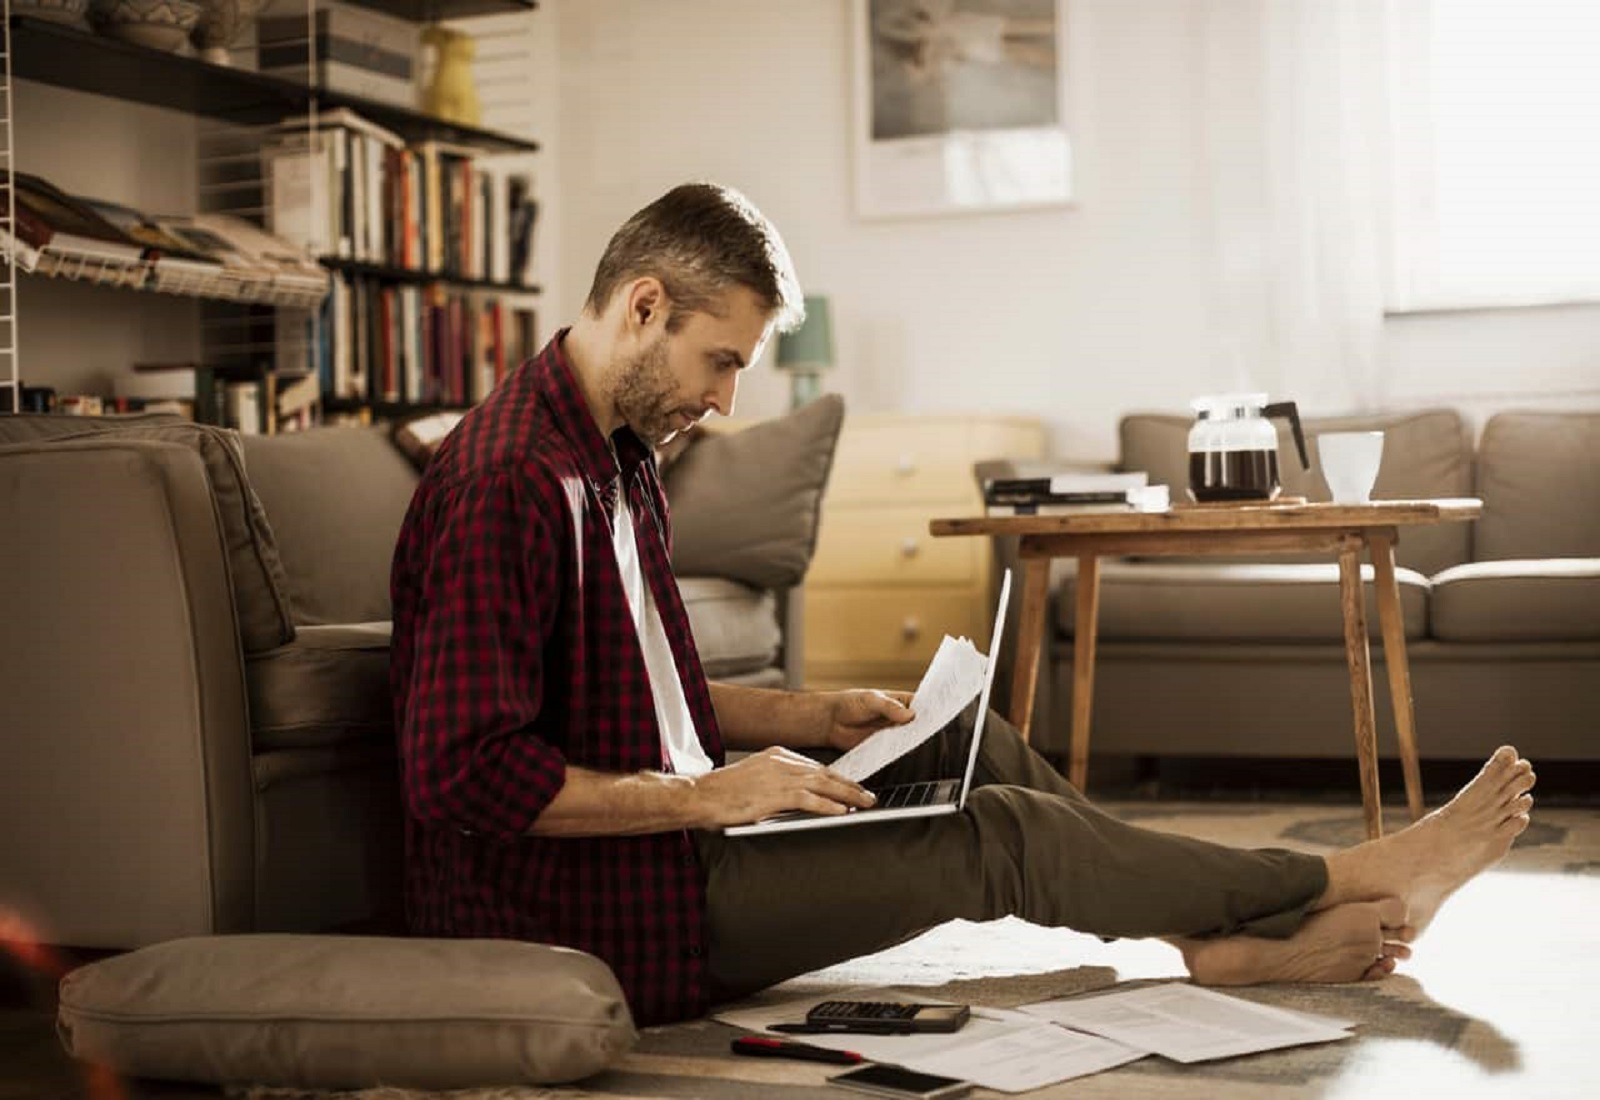 How to Insure Your Home-Based Business?